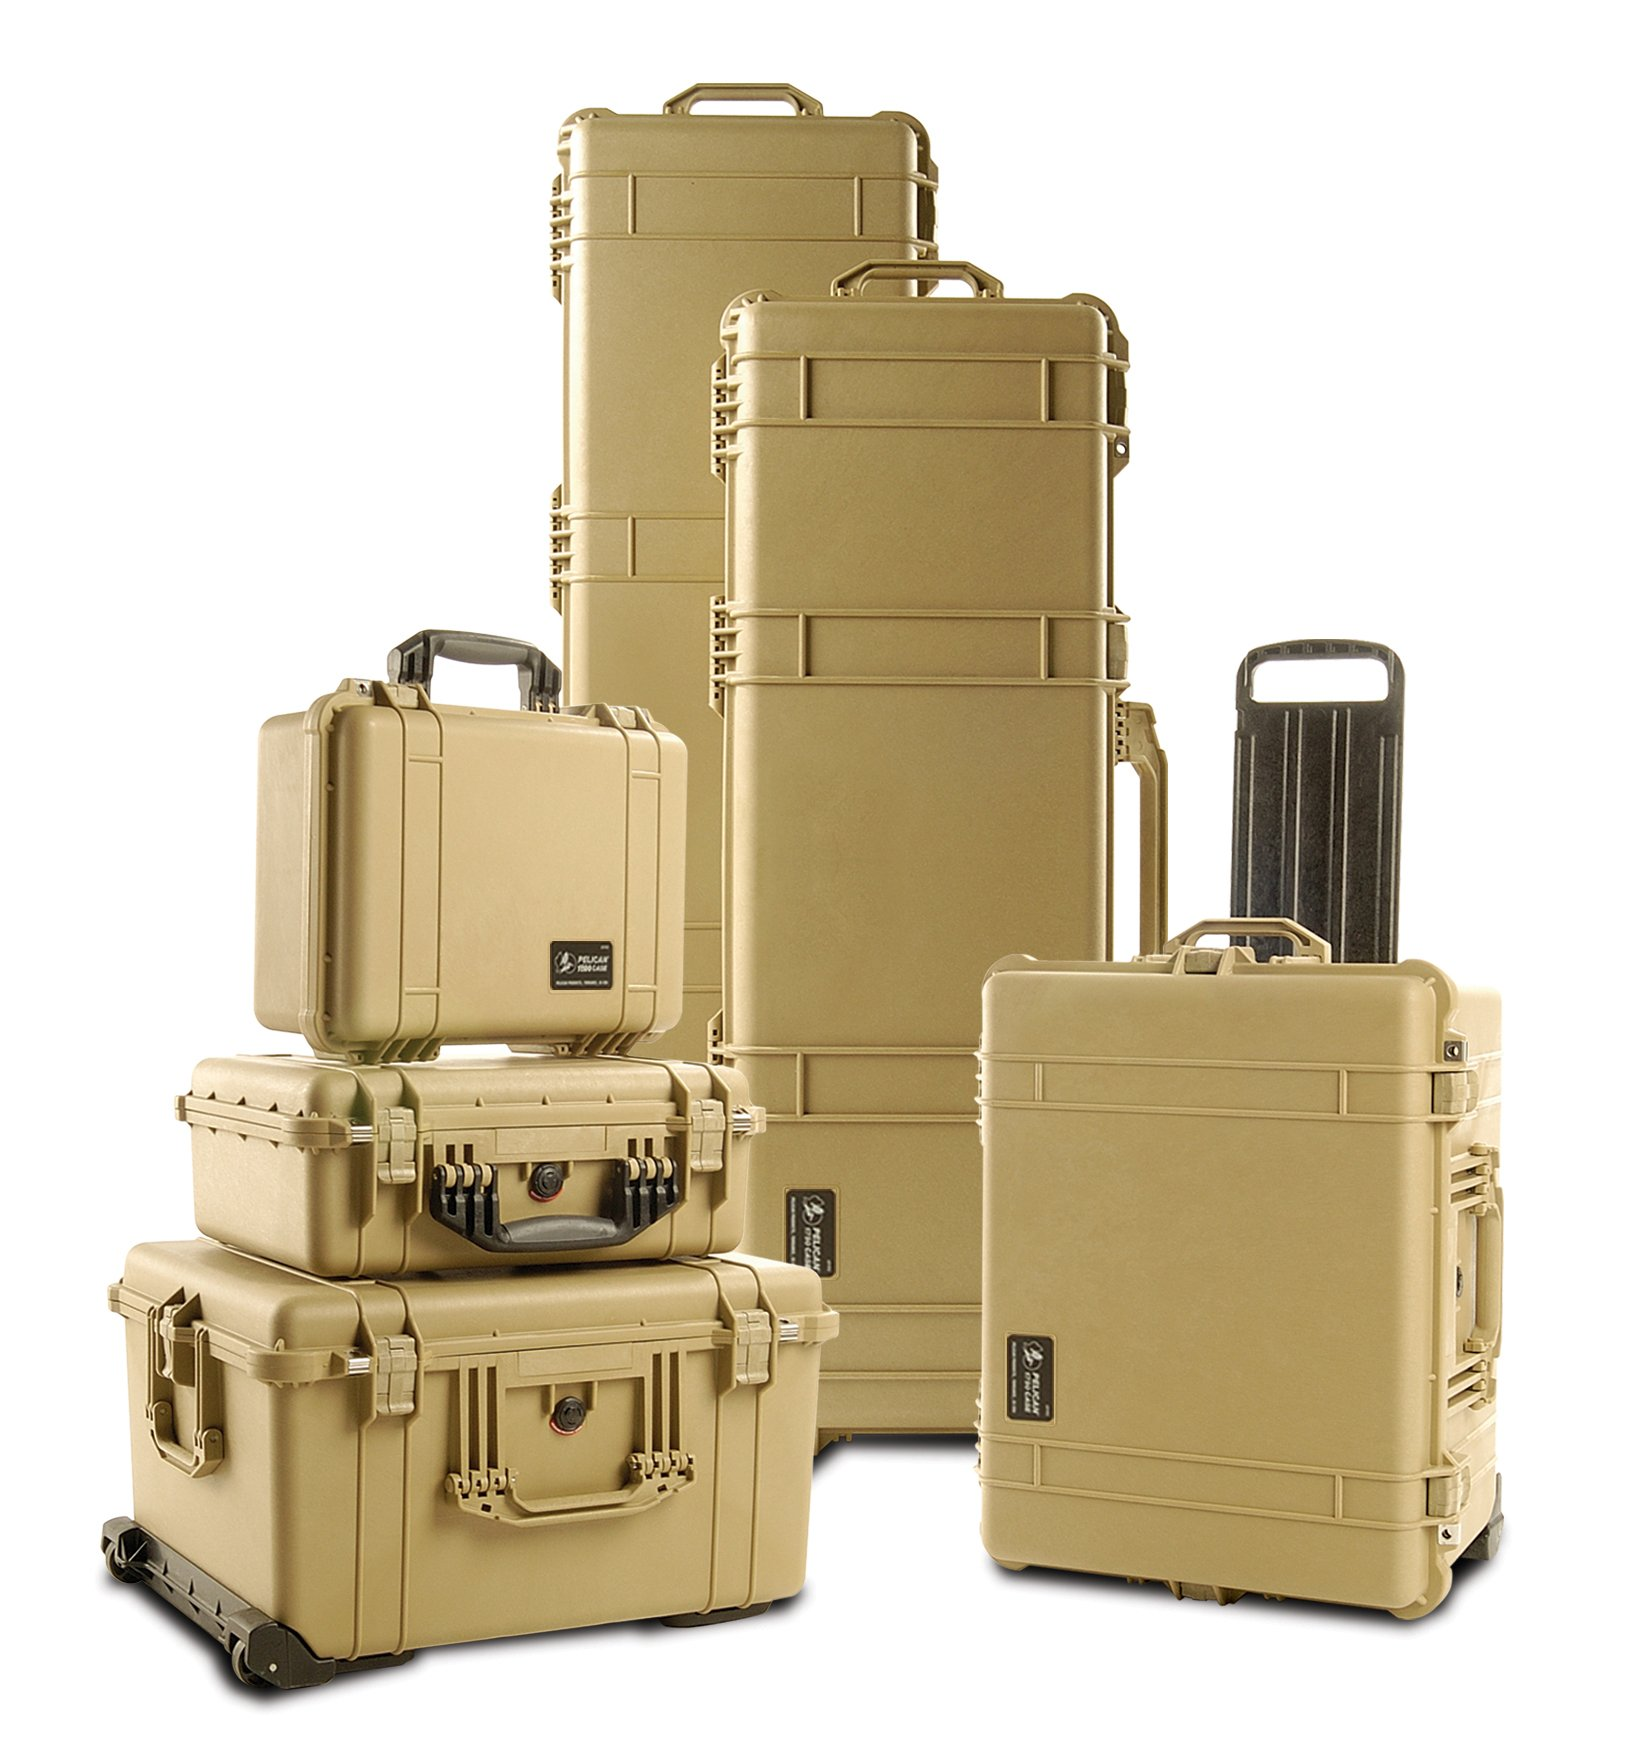 Pelican 1750 Rifle Case With Foam (Desert Tan) by Pelican (Image #3)